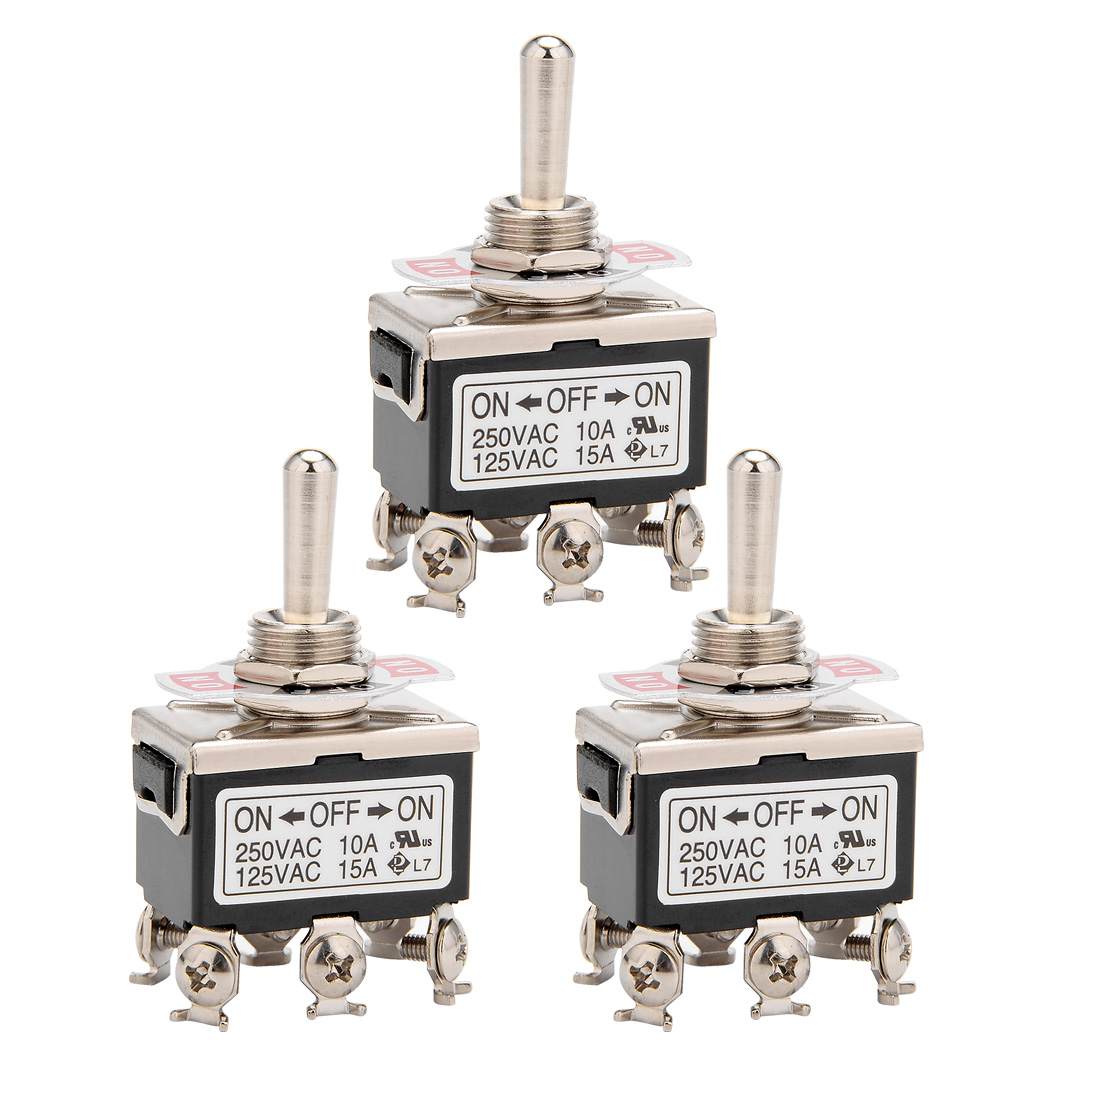 3Pcs AC 125V/15A 250V/10A ON-OFF-ON 3P 6 Terminals Latching DPDT Toggle Switch